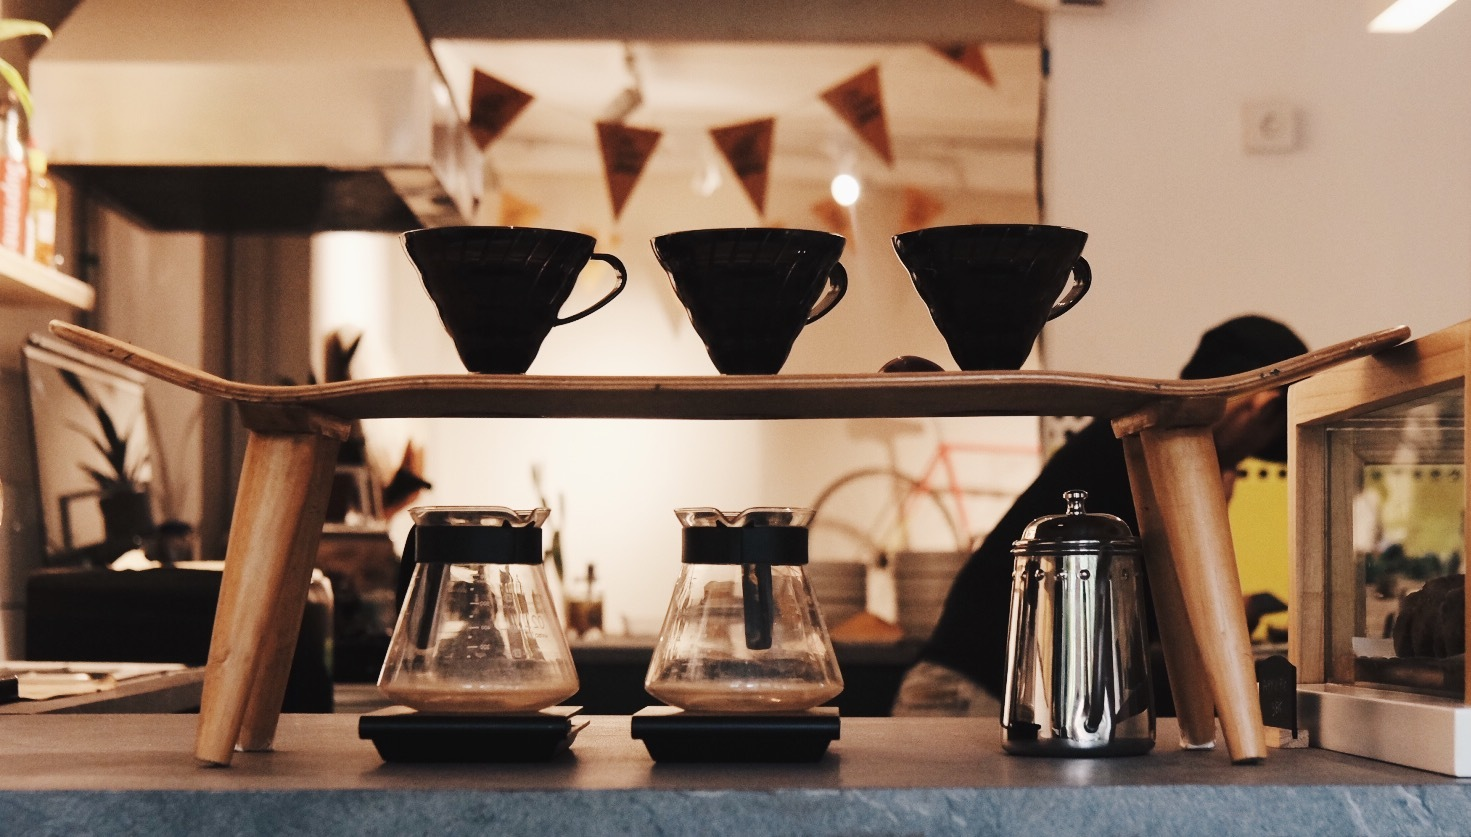 Morning coffee by Nab Photography